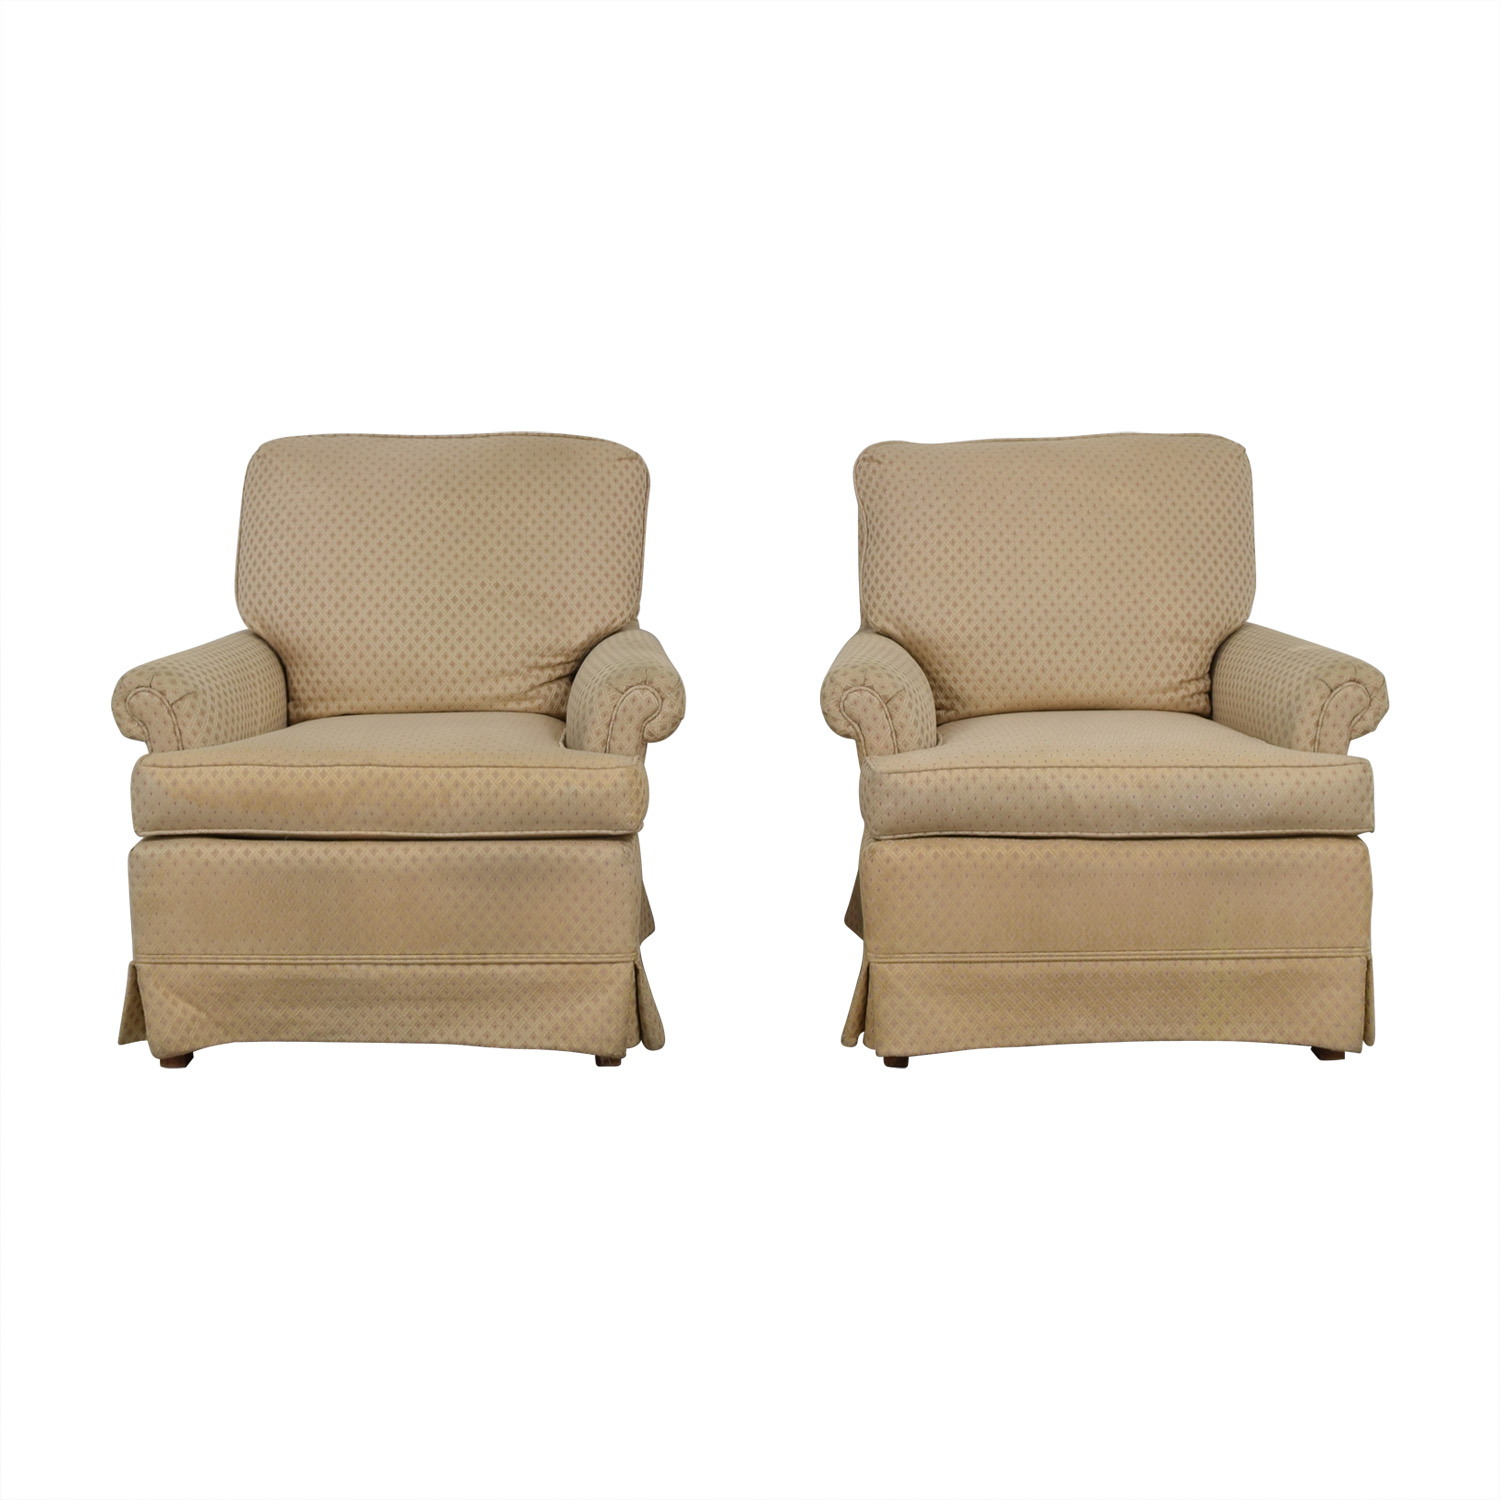 Broyhill Broyhill Beige Upholstered Accent Chairs price